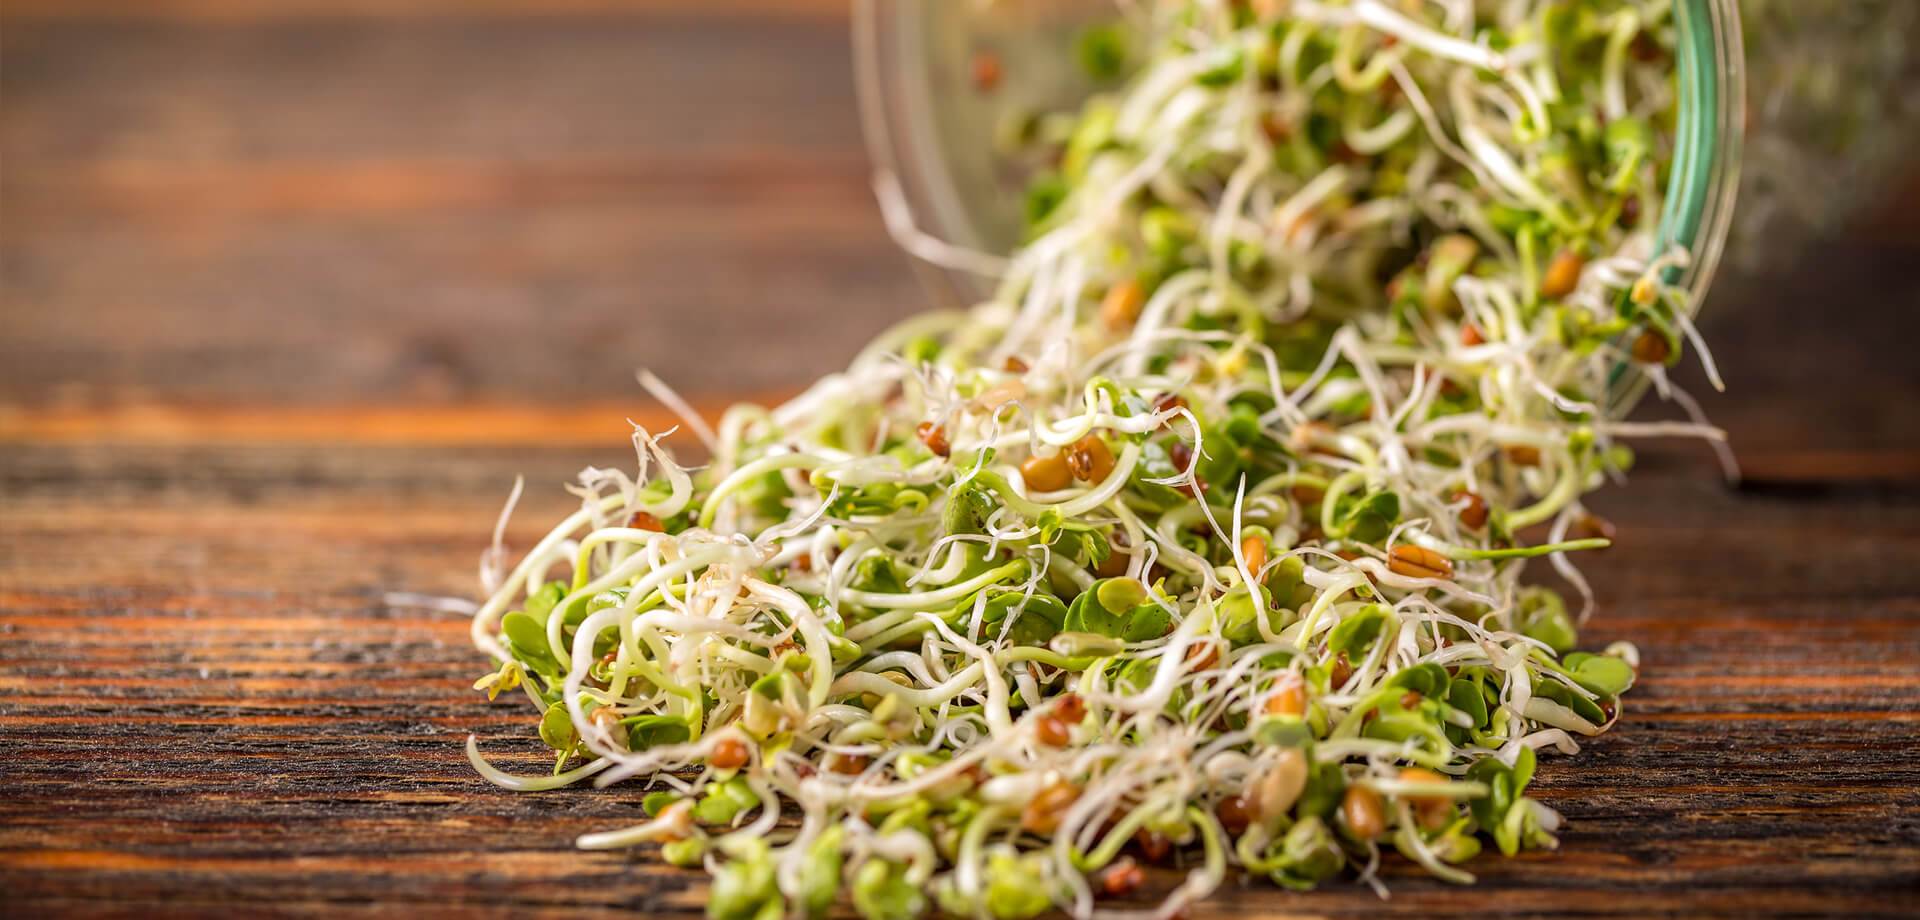 Sprouts for health